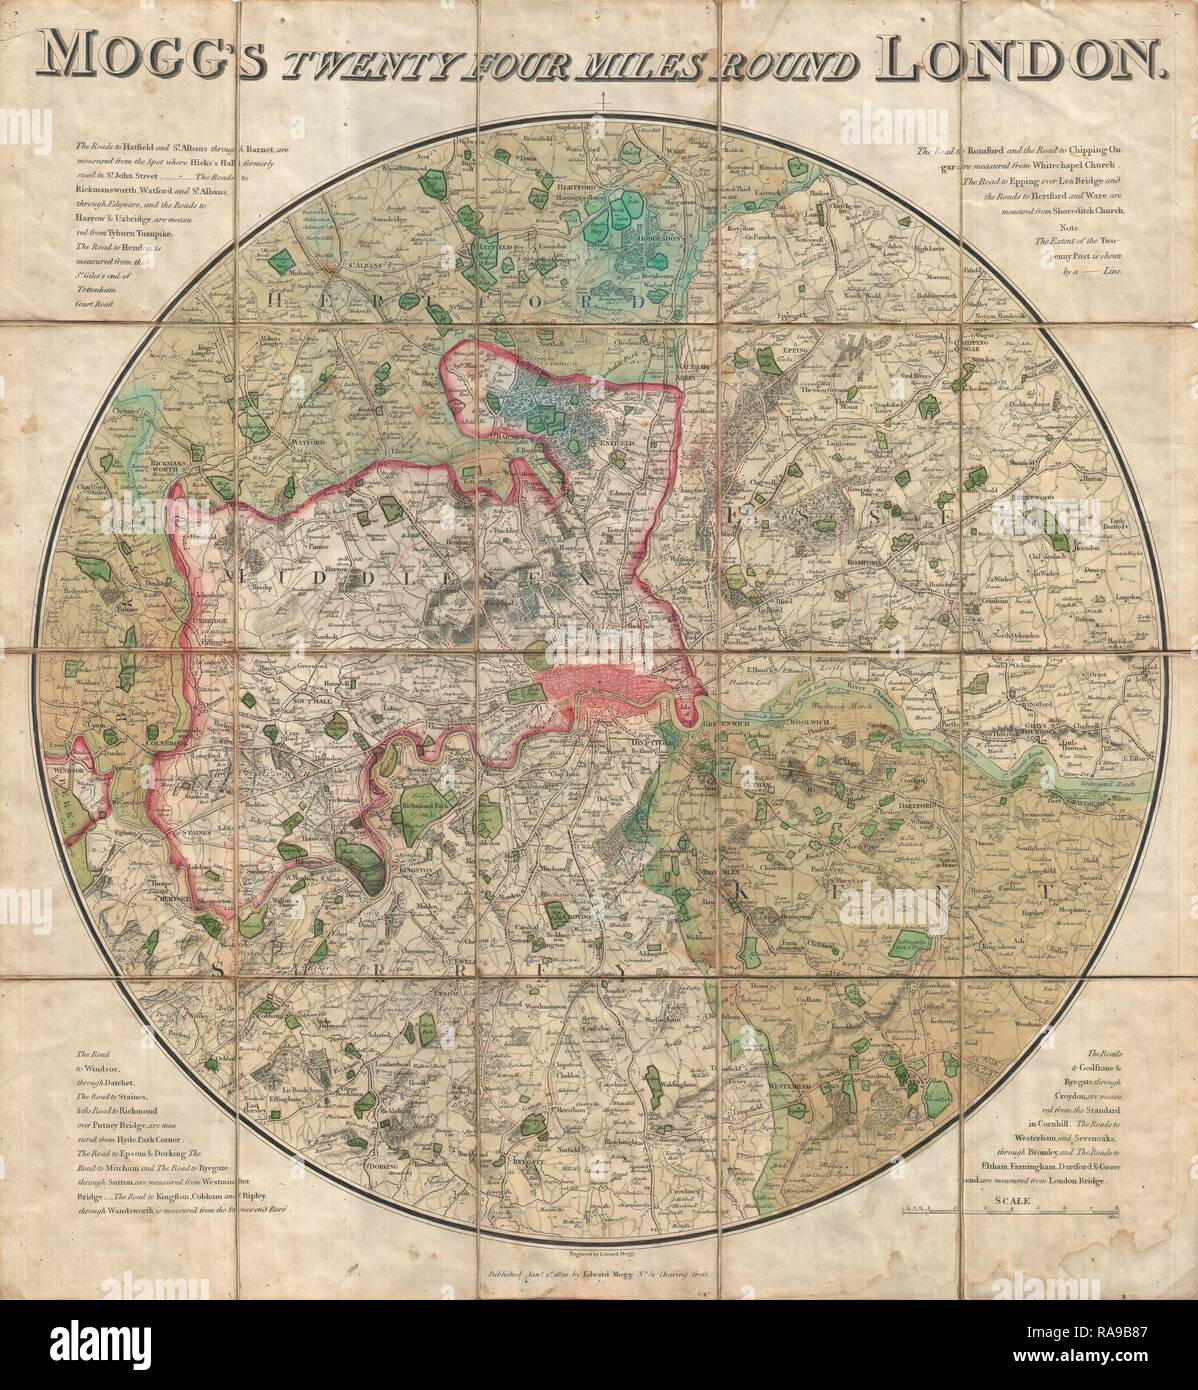 1820, Mogg Pocket or Case Map of London, England, 24 Miles around. Reimagined by Gibon. Classic art with a modern reimagined - Stock Image